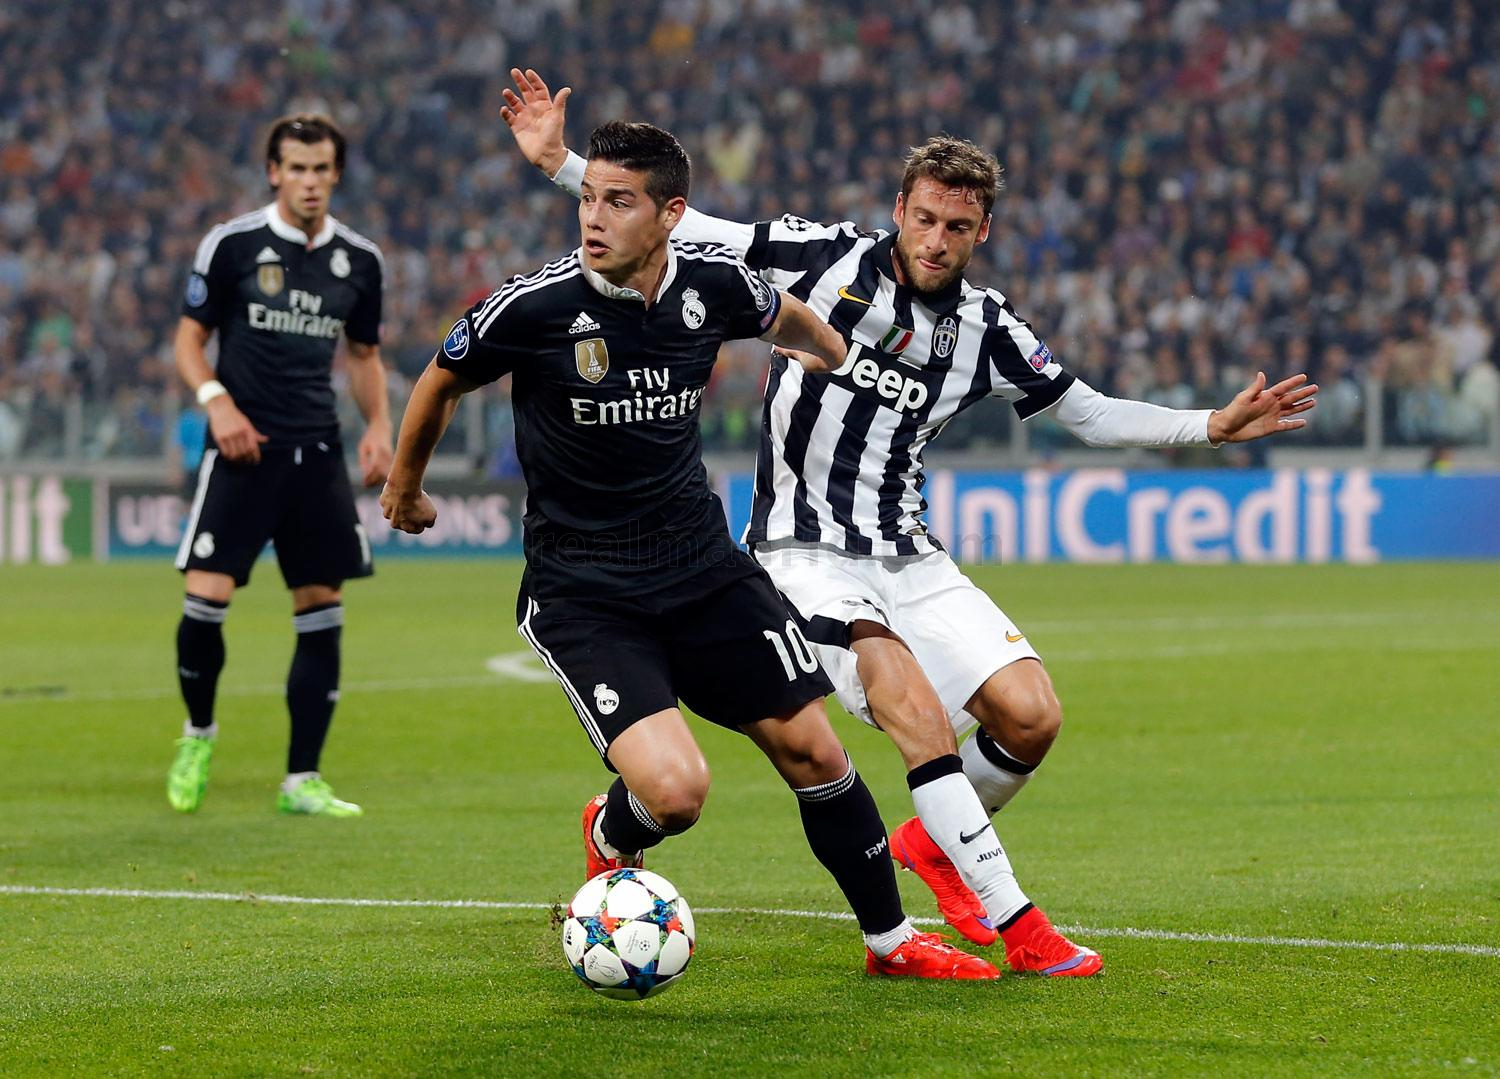 Real Madrid - Juventus - Real Madrid - 05-05-2015